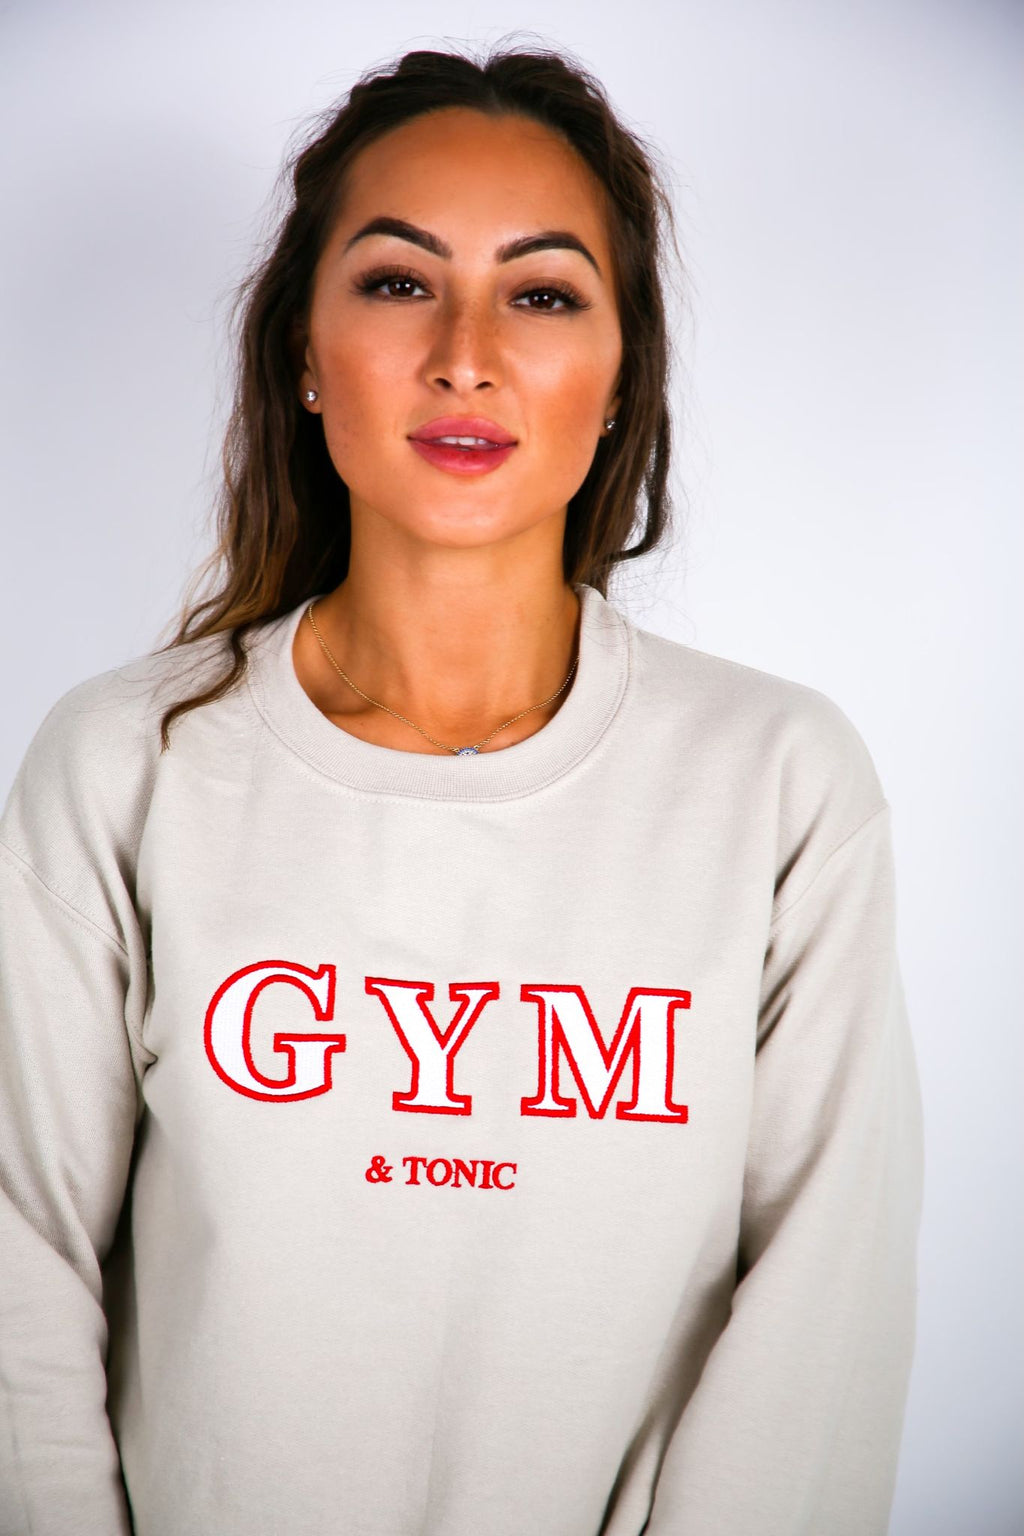 Gym & Tonic Embroidered Sweater - by Bon Bon x